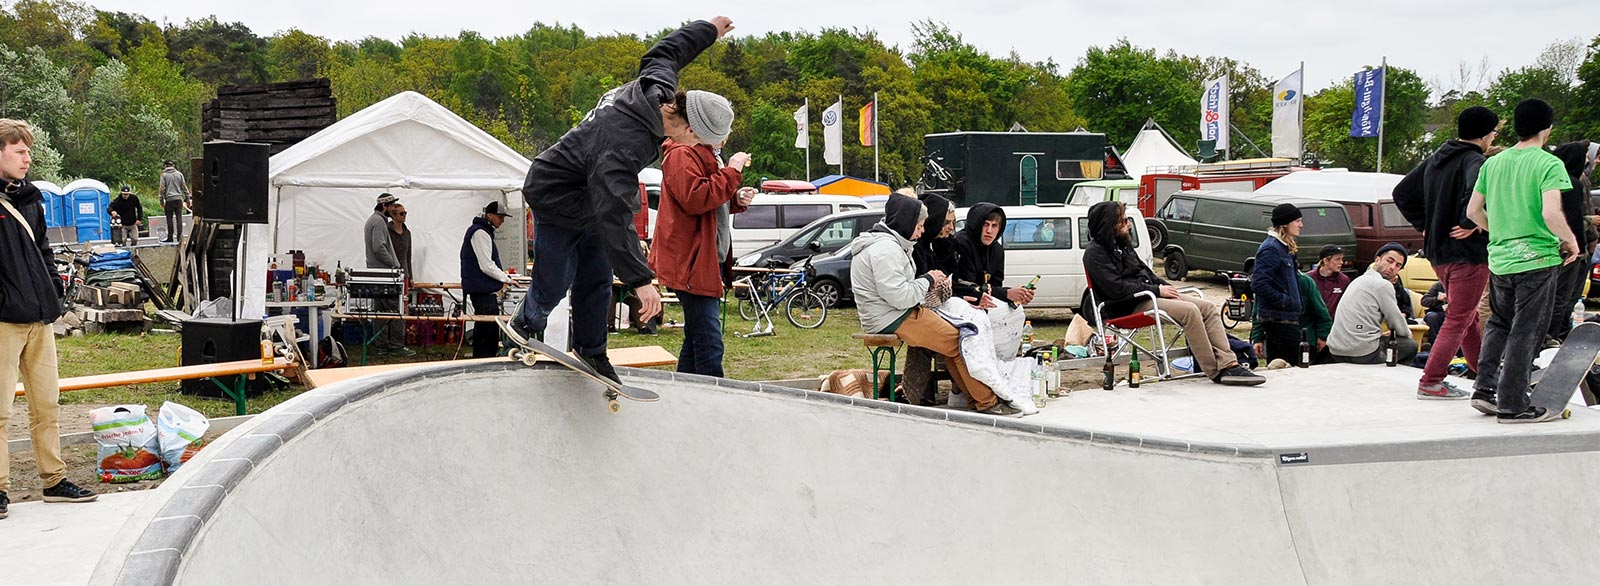 slider_start_ruegen_skateboarden_18